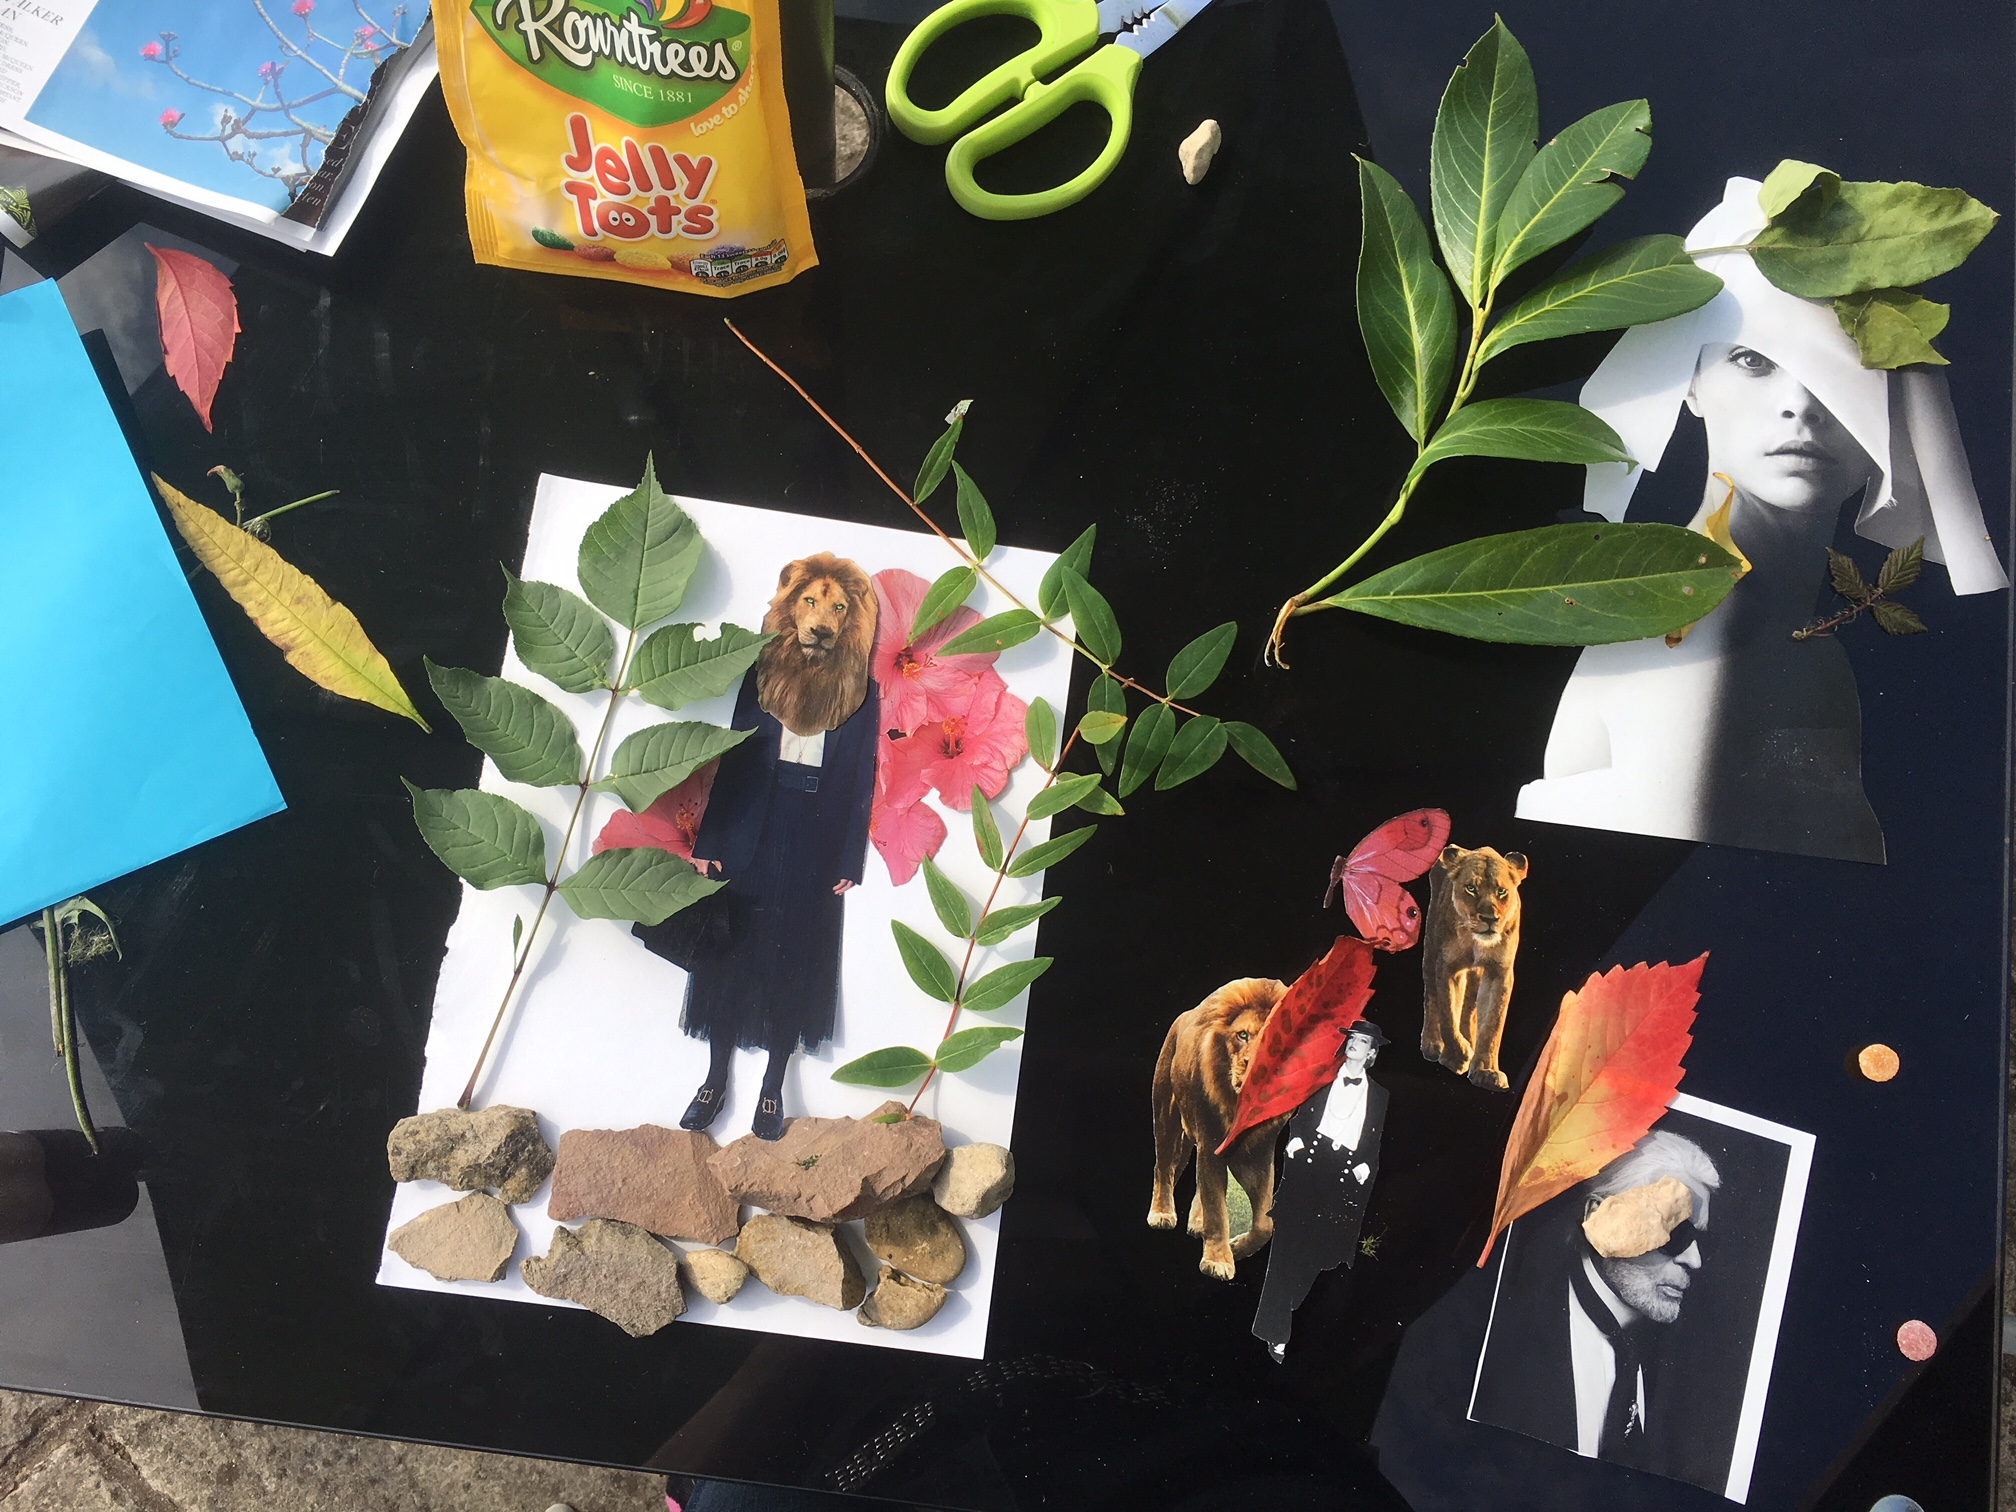 Example of my Design process - I used images cut out from magazines and made a collage on a table. I used rocks, flowers, leaves - anything I could find and played around with different ideas. I photographed the collage images and used those photographs in my design work.